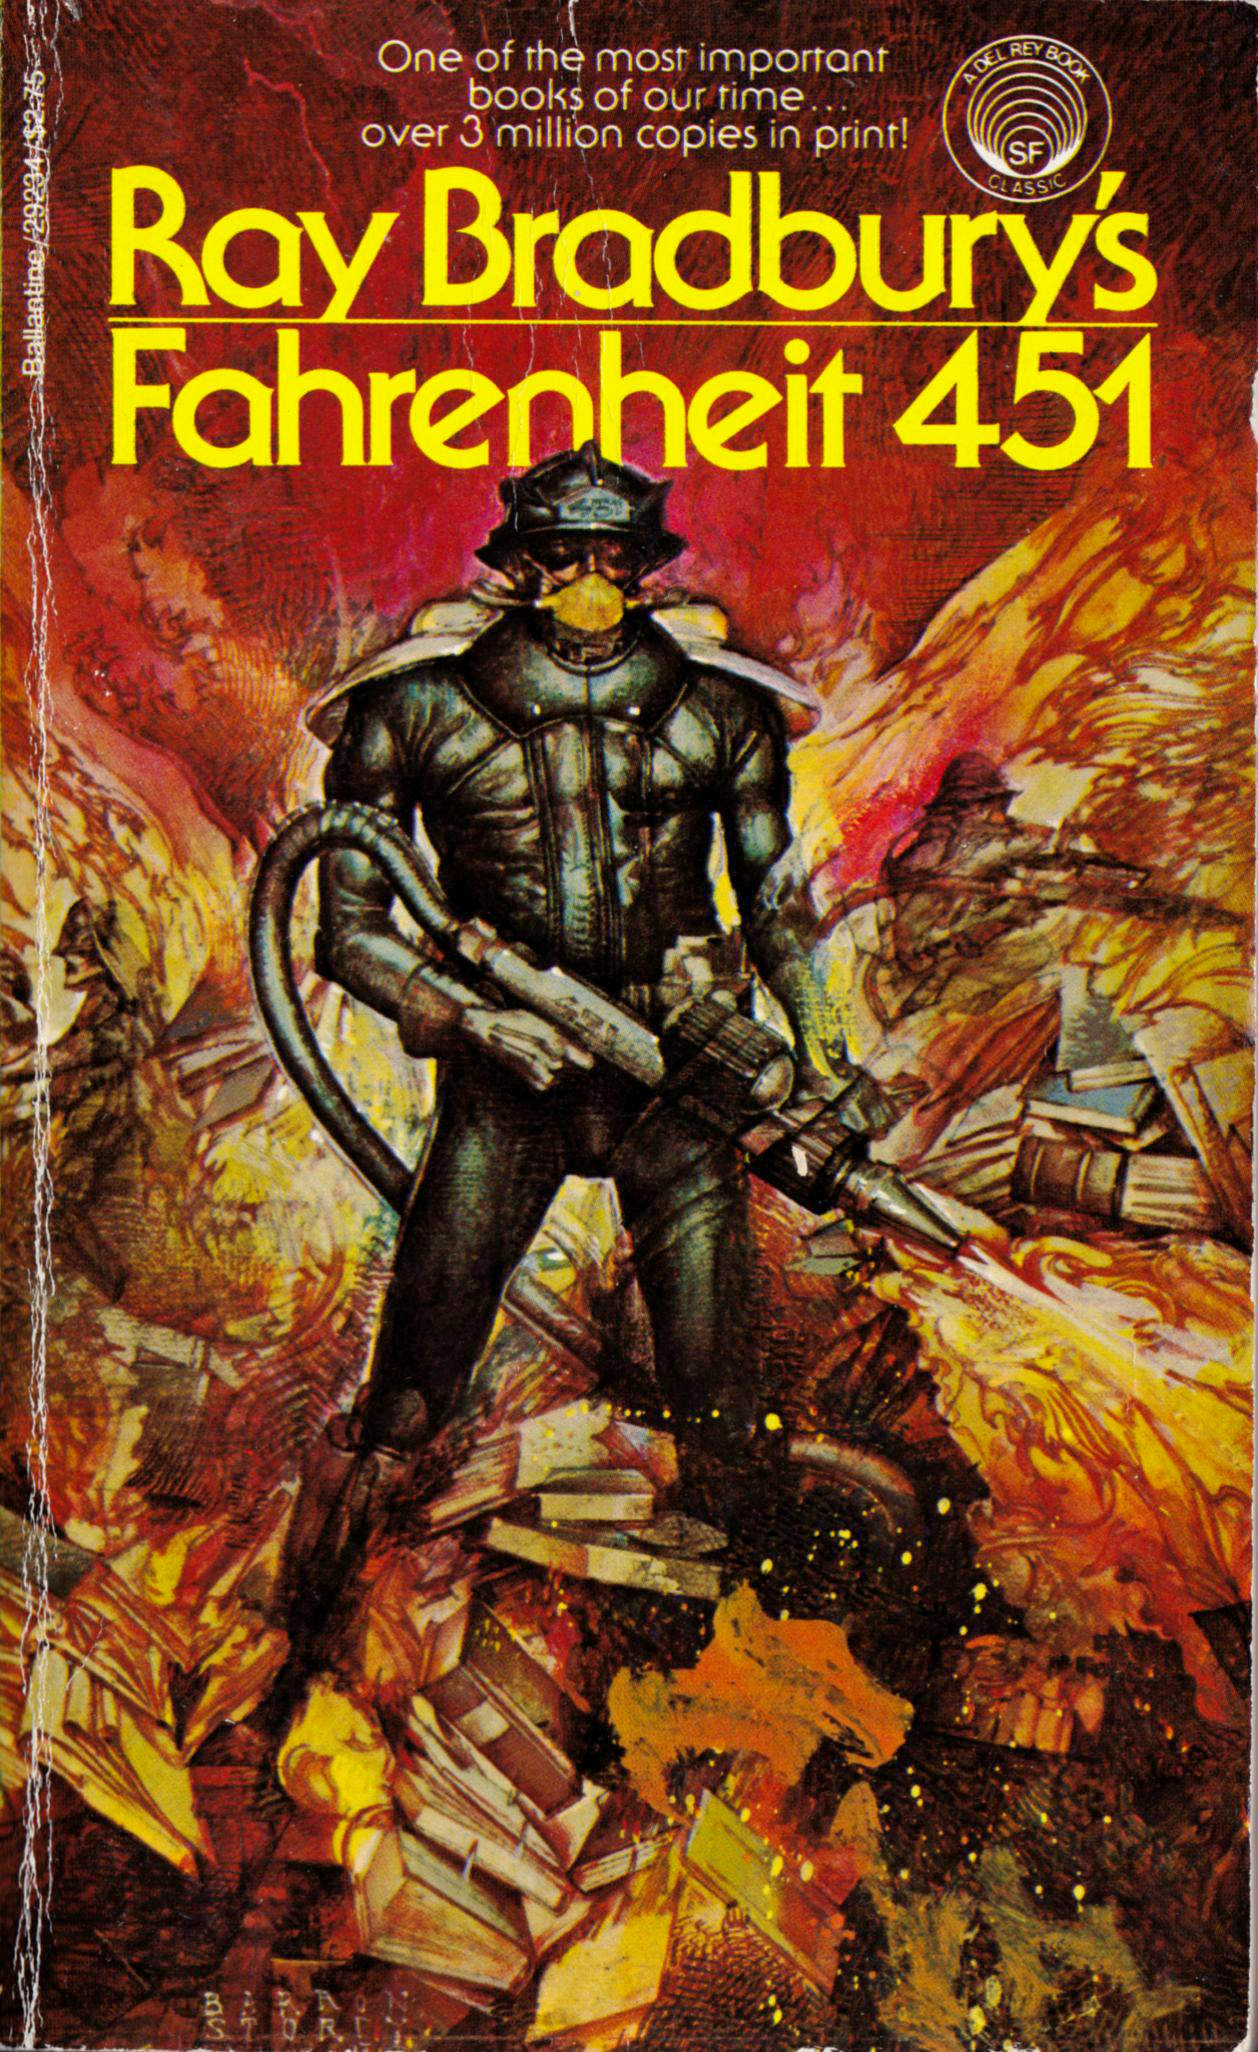 darwinian thoughts on ray bradbury s fahrenheit 451 welcome to darwinian thoughts on ray bradbury s fahrenheit 451